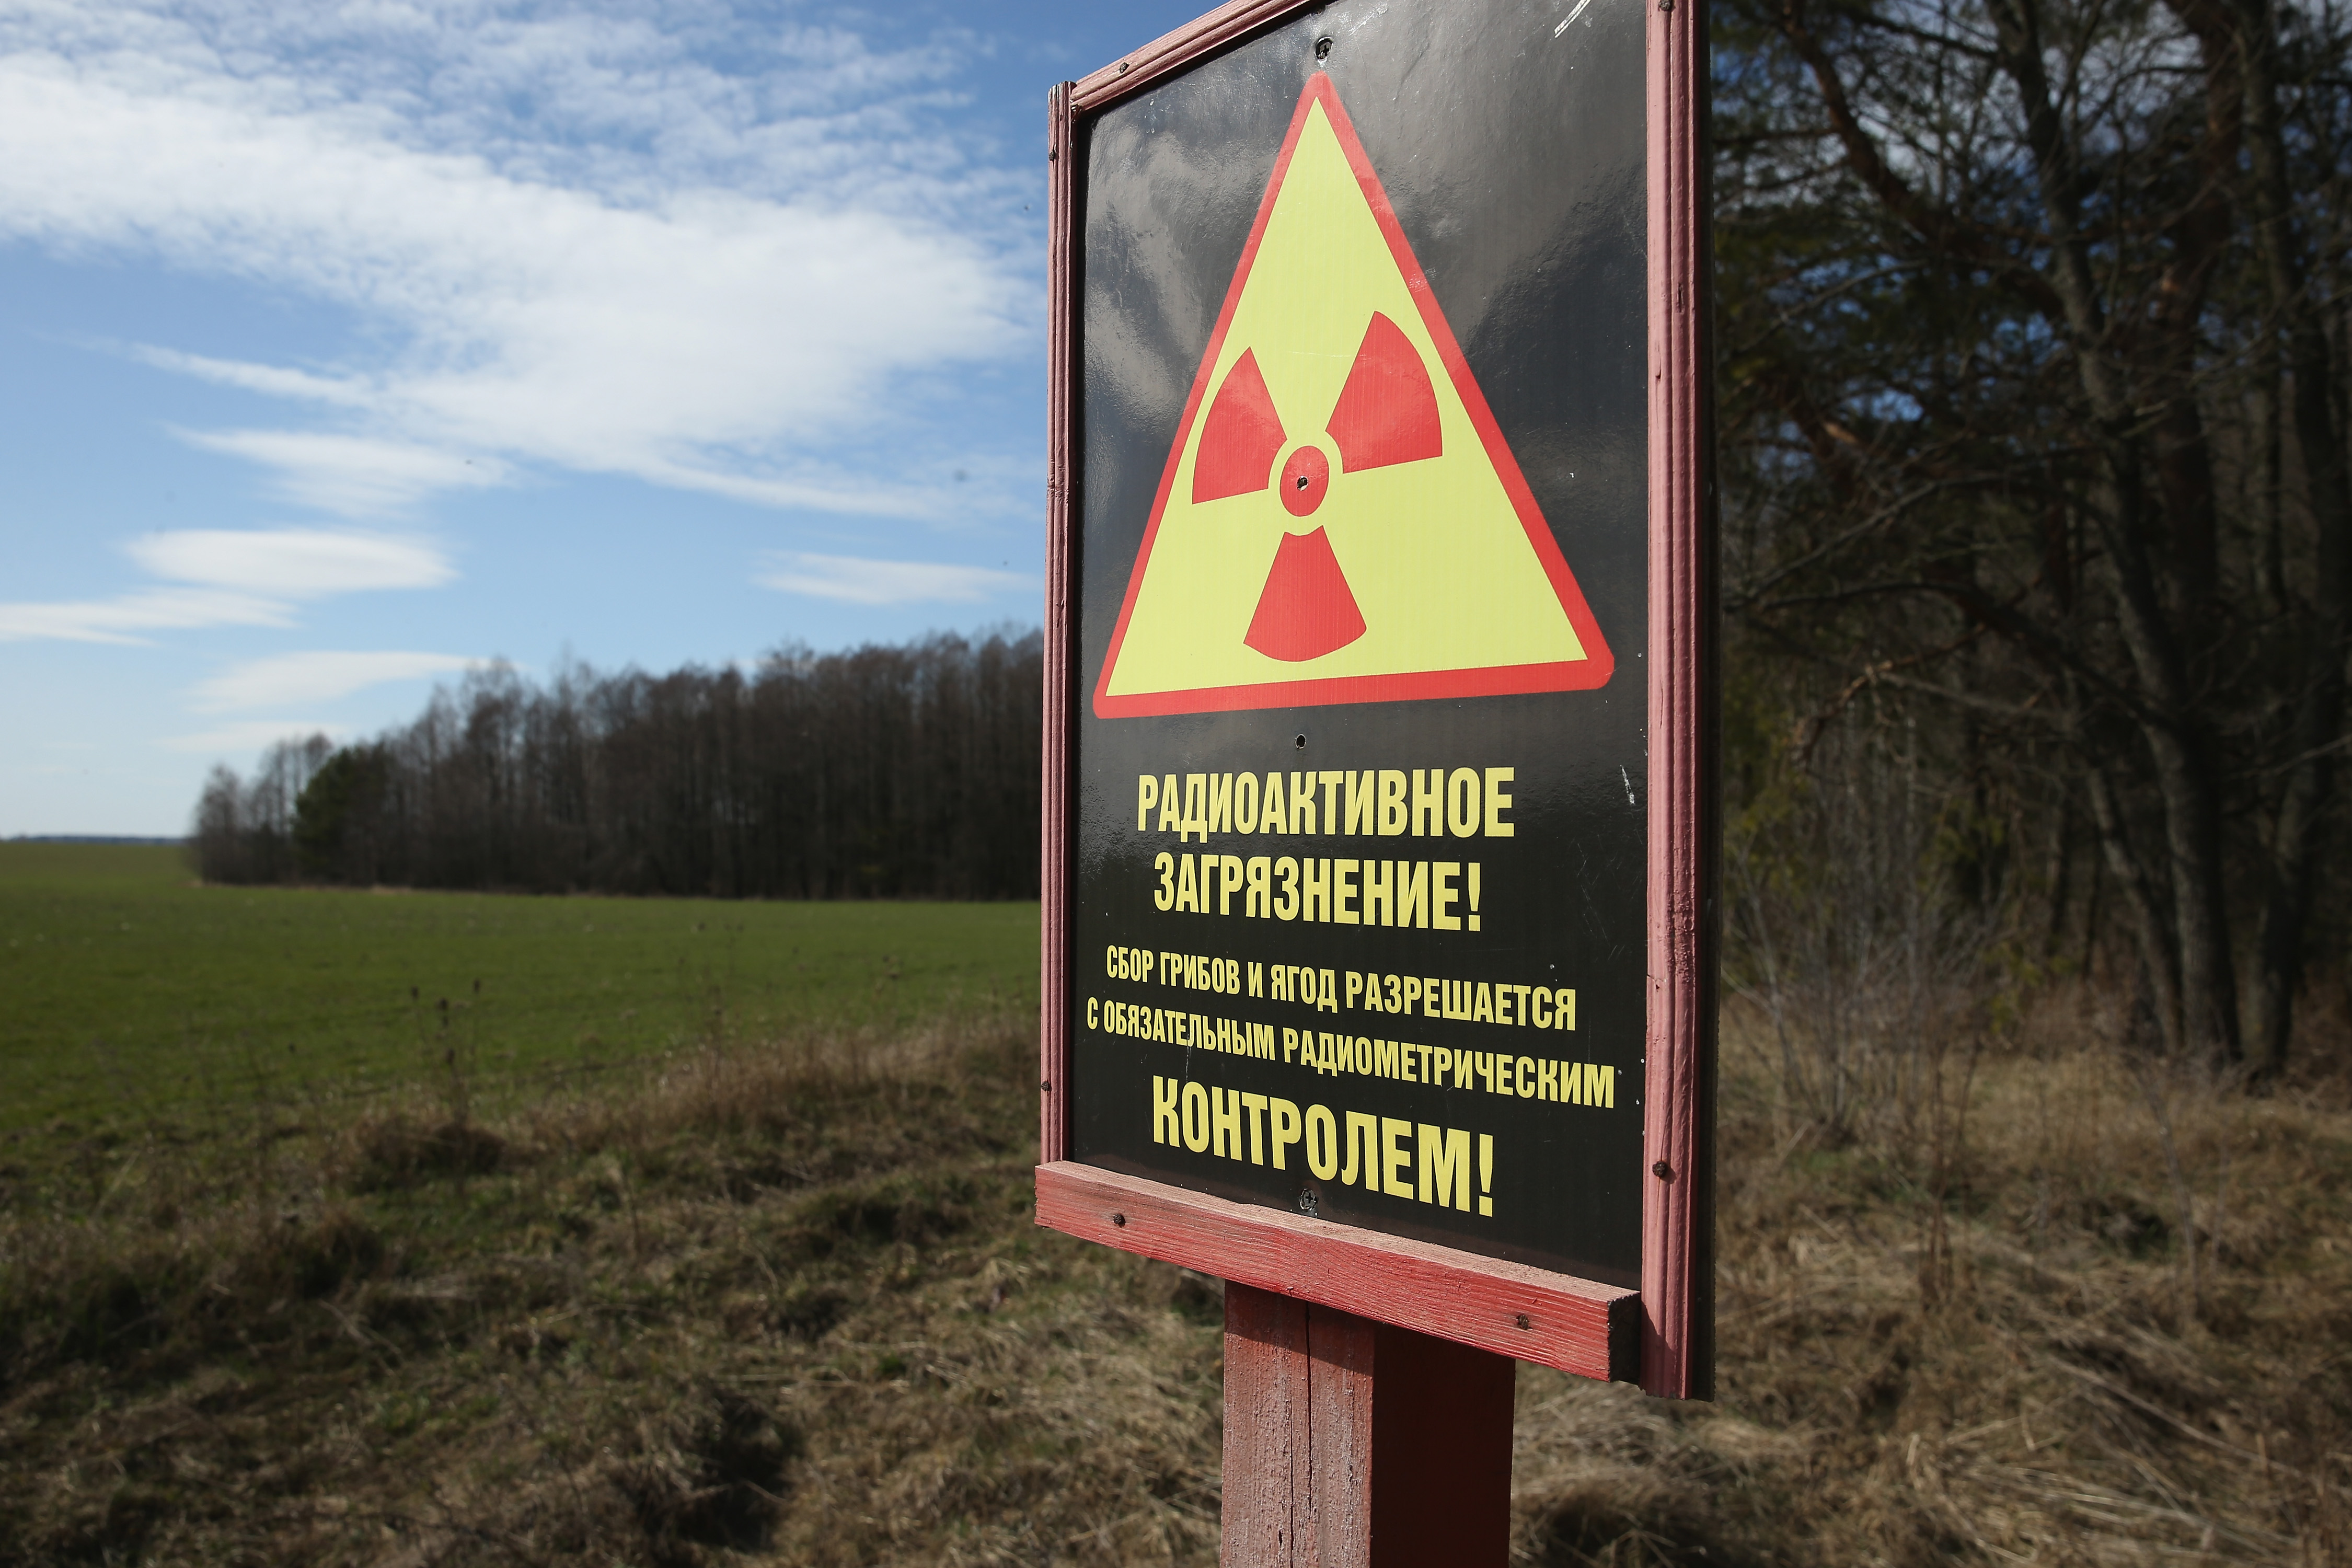 Chernobyl Disaster facts